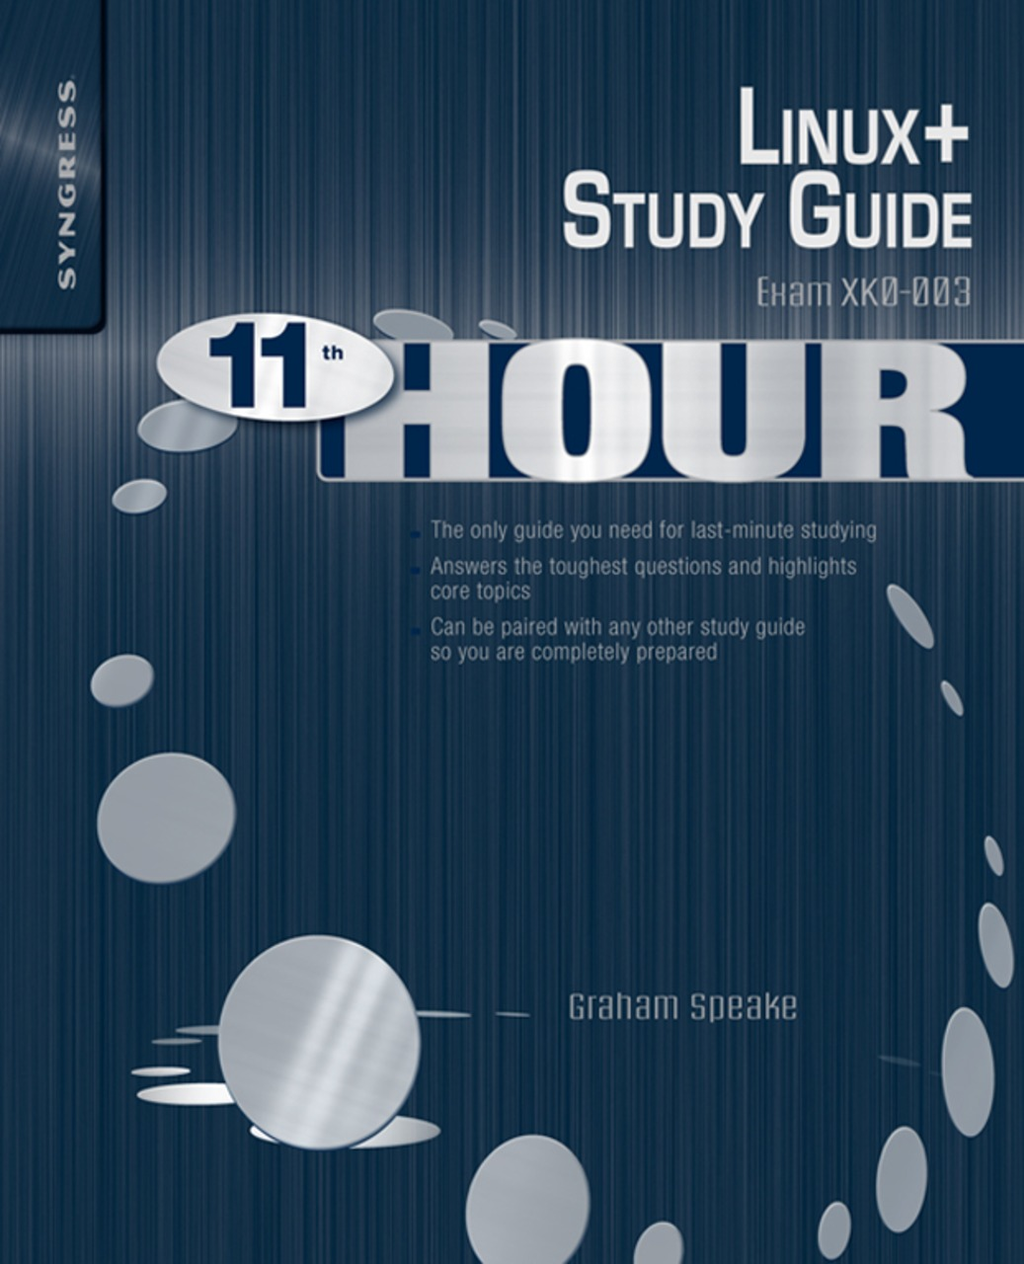 Eleventh Hour Linux+ Exam XK0-003 Study Guide